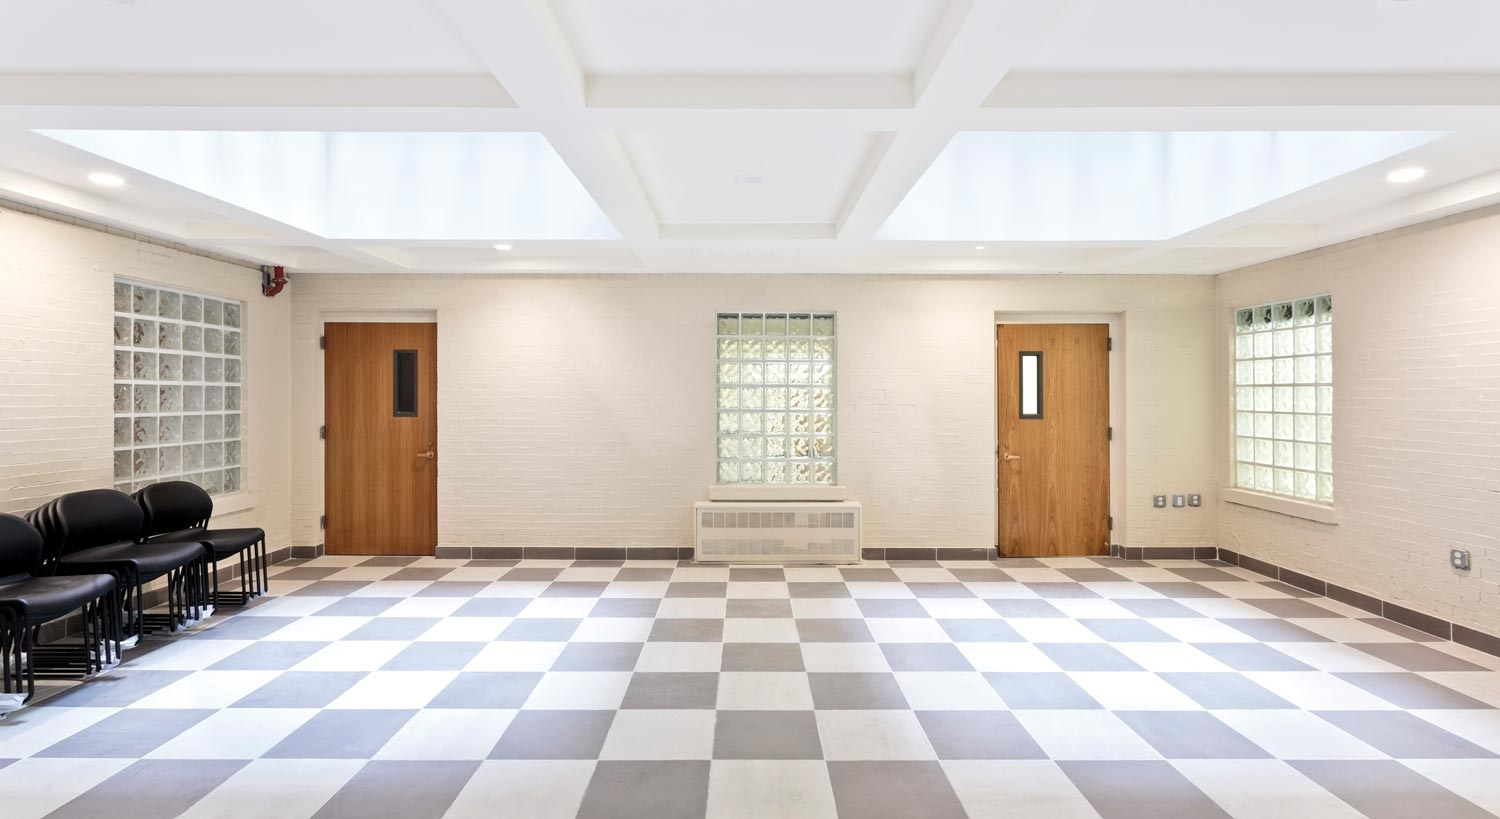 Capitol Hall's interior courtyard was repurposed and transformed into a new community room.